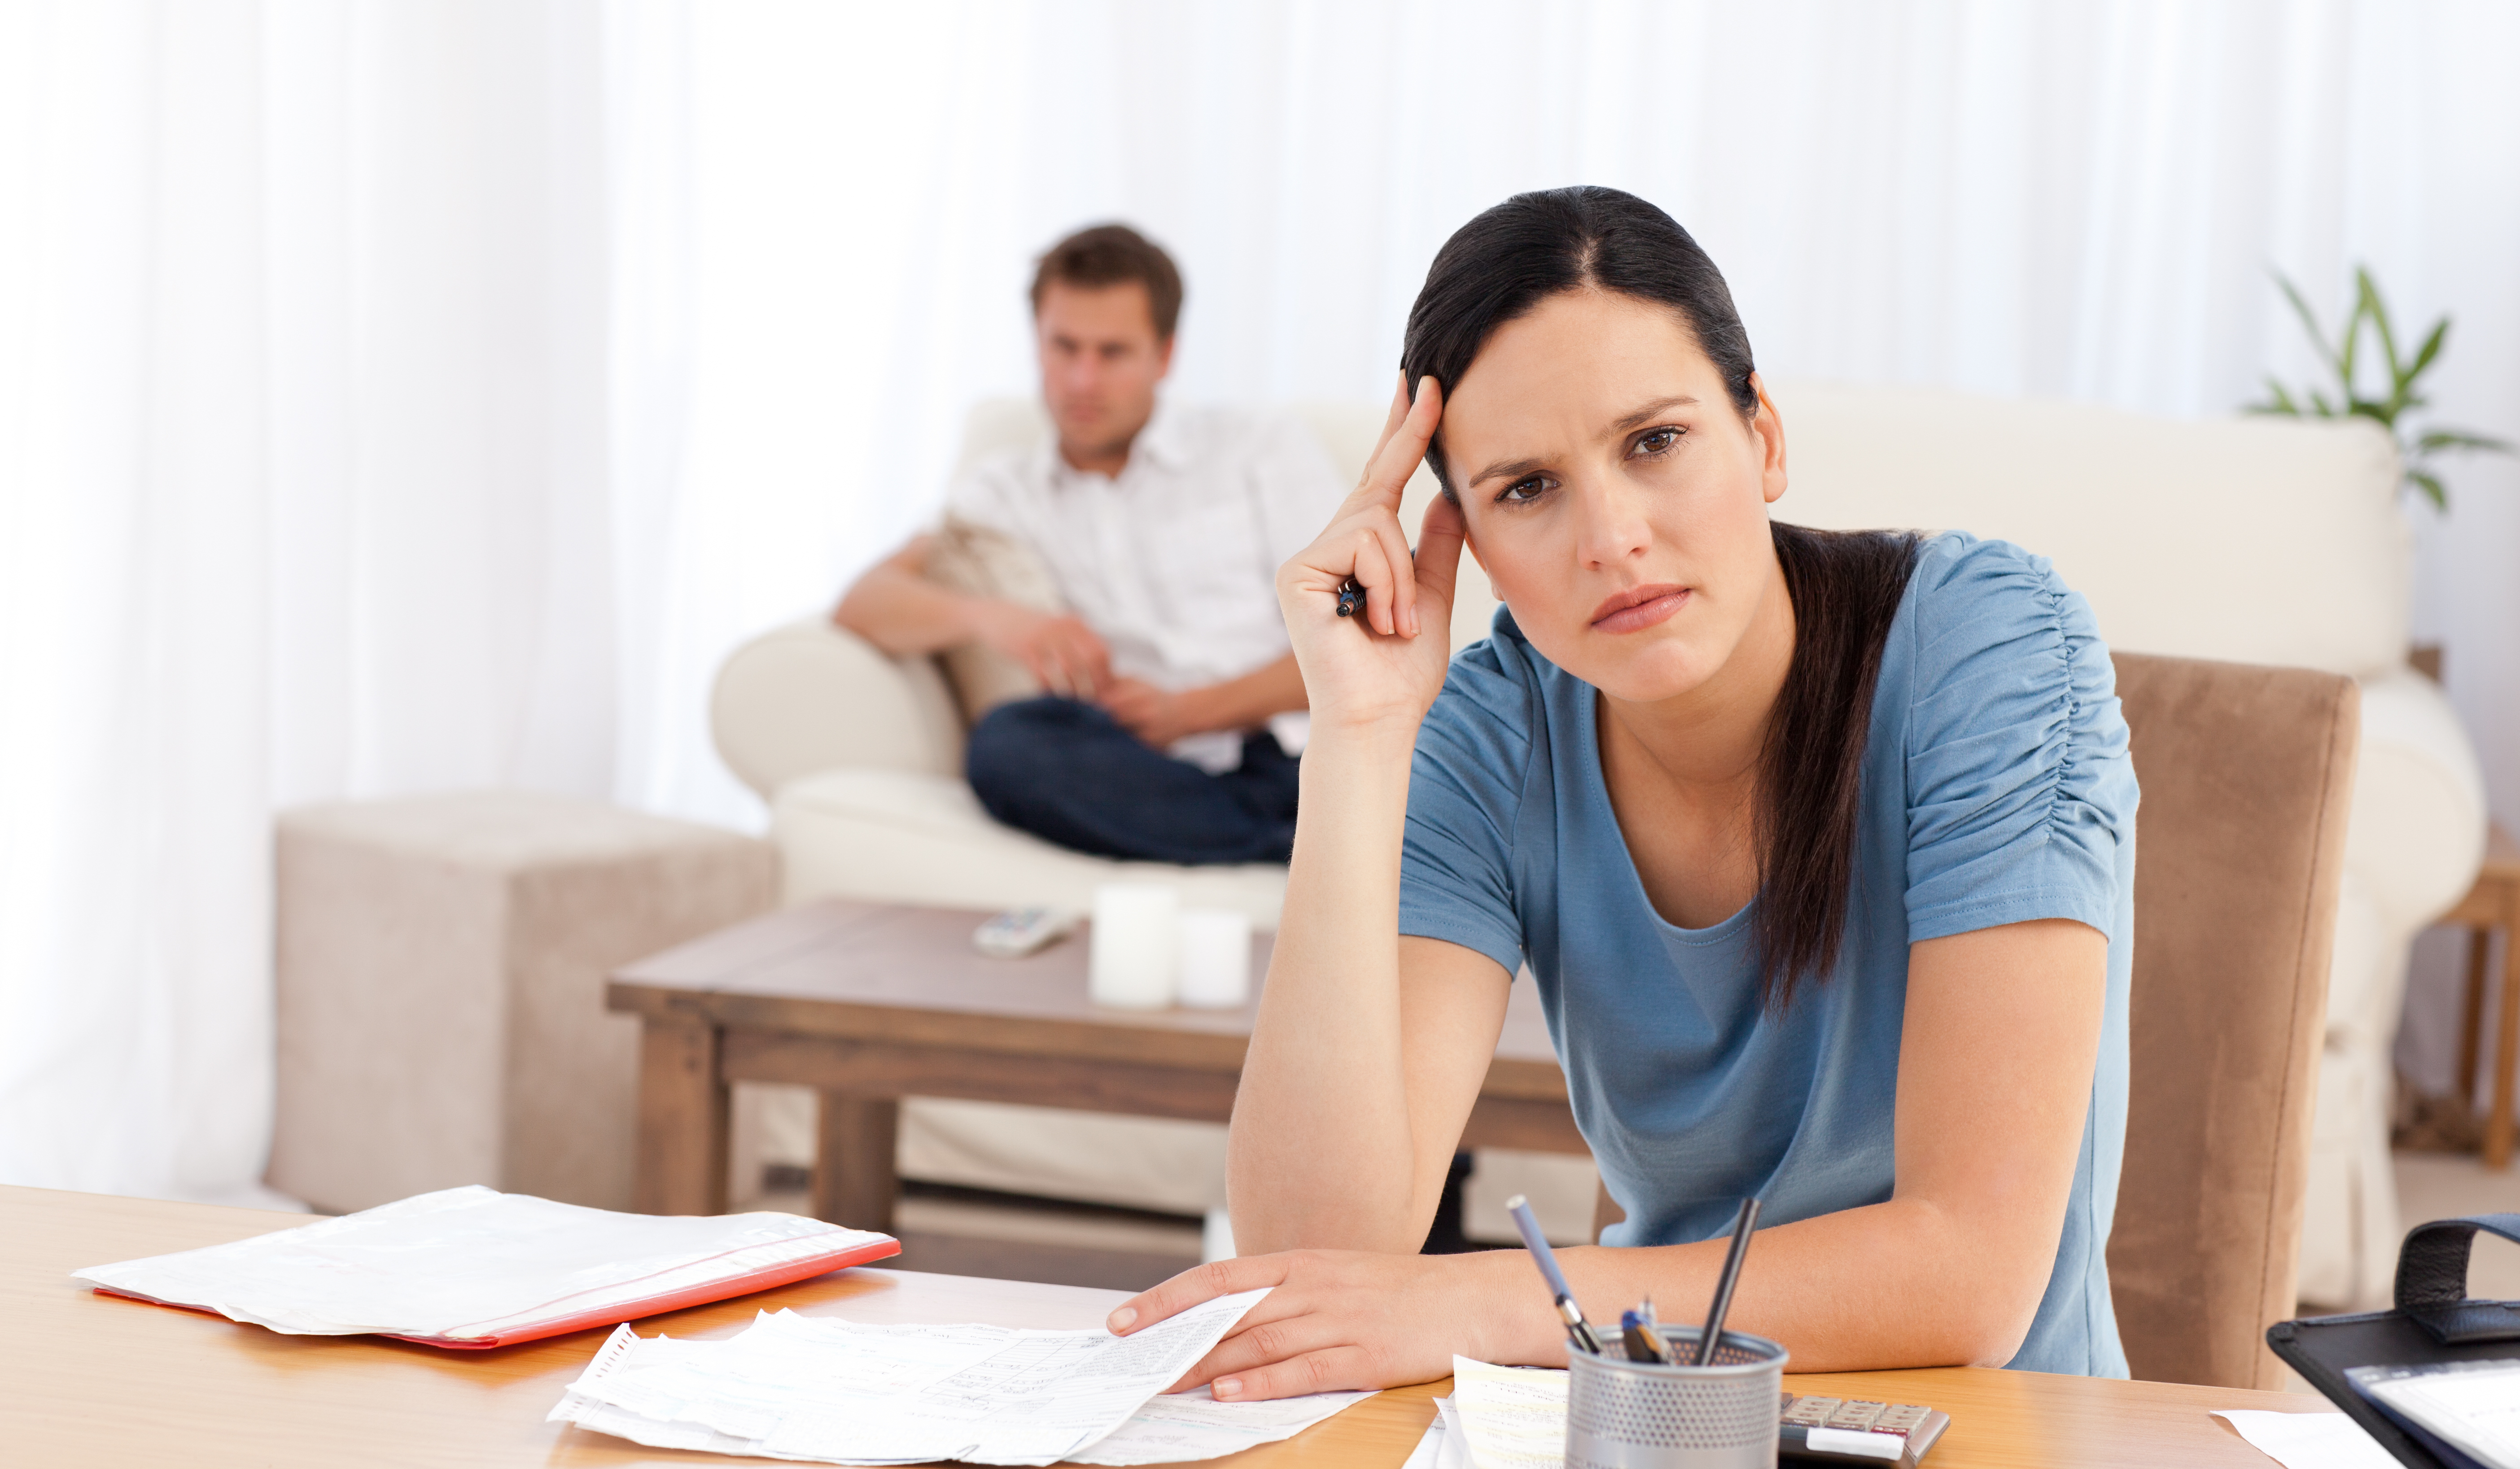 Divorce Financial Expert helps to navigate the financial aspects of divorce